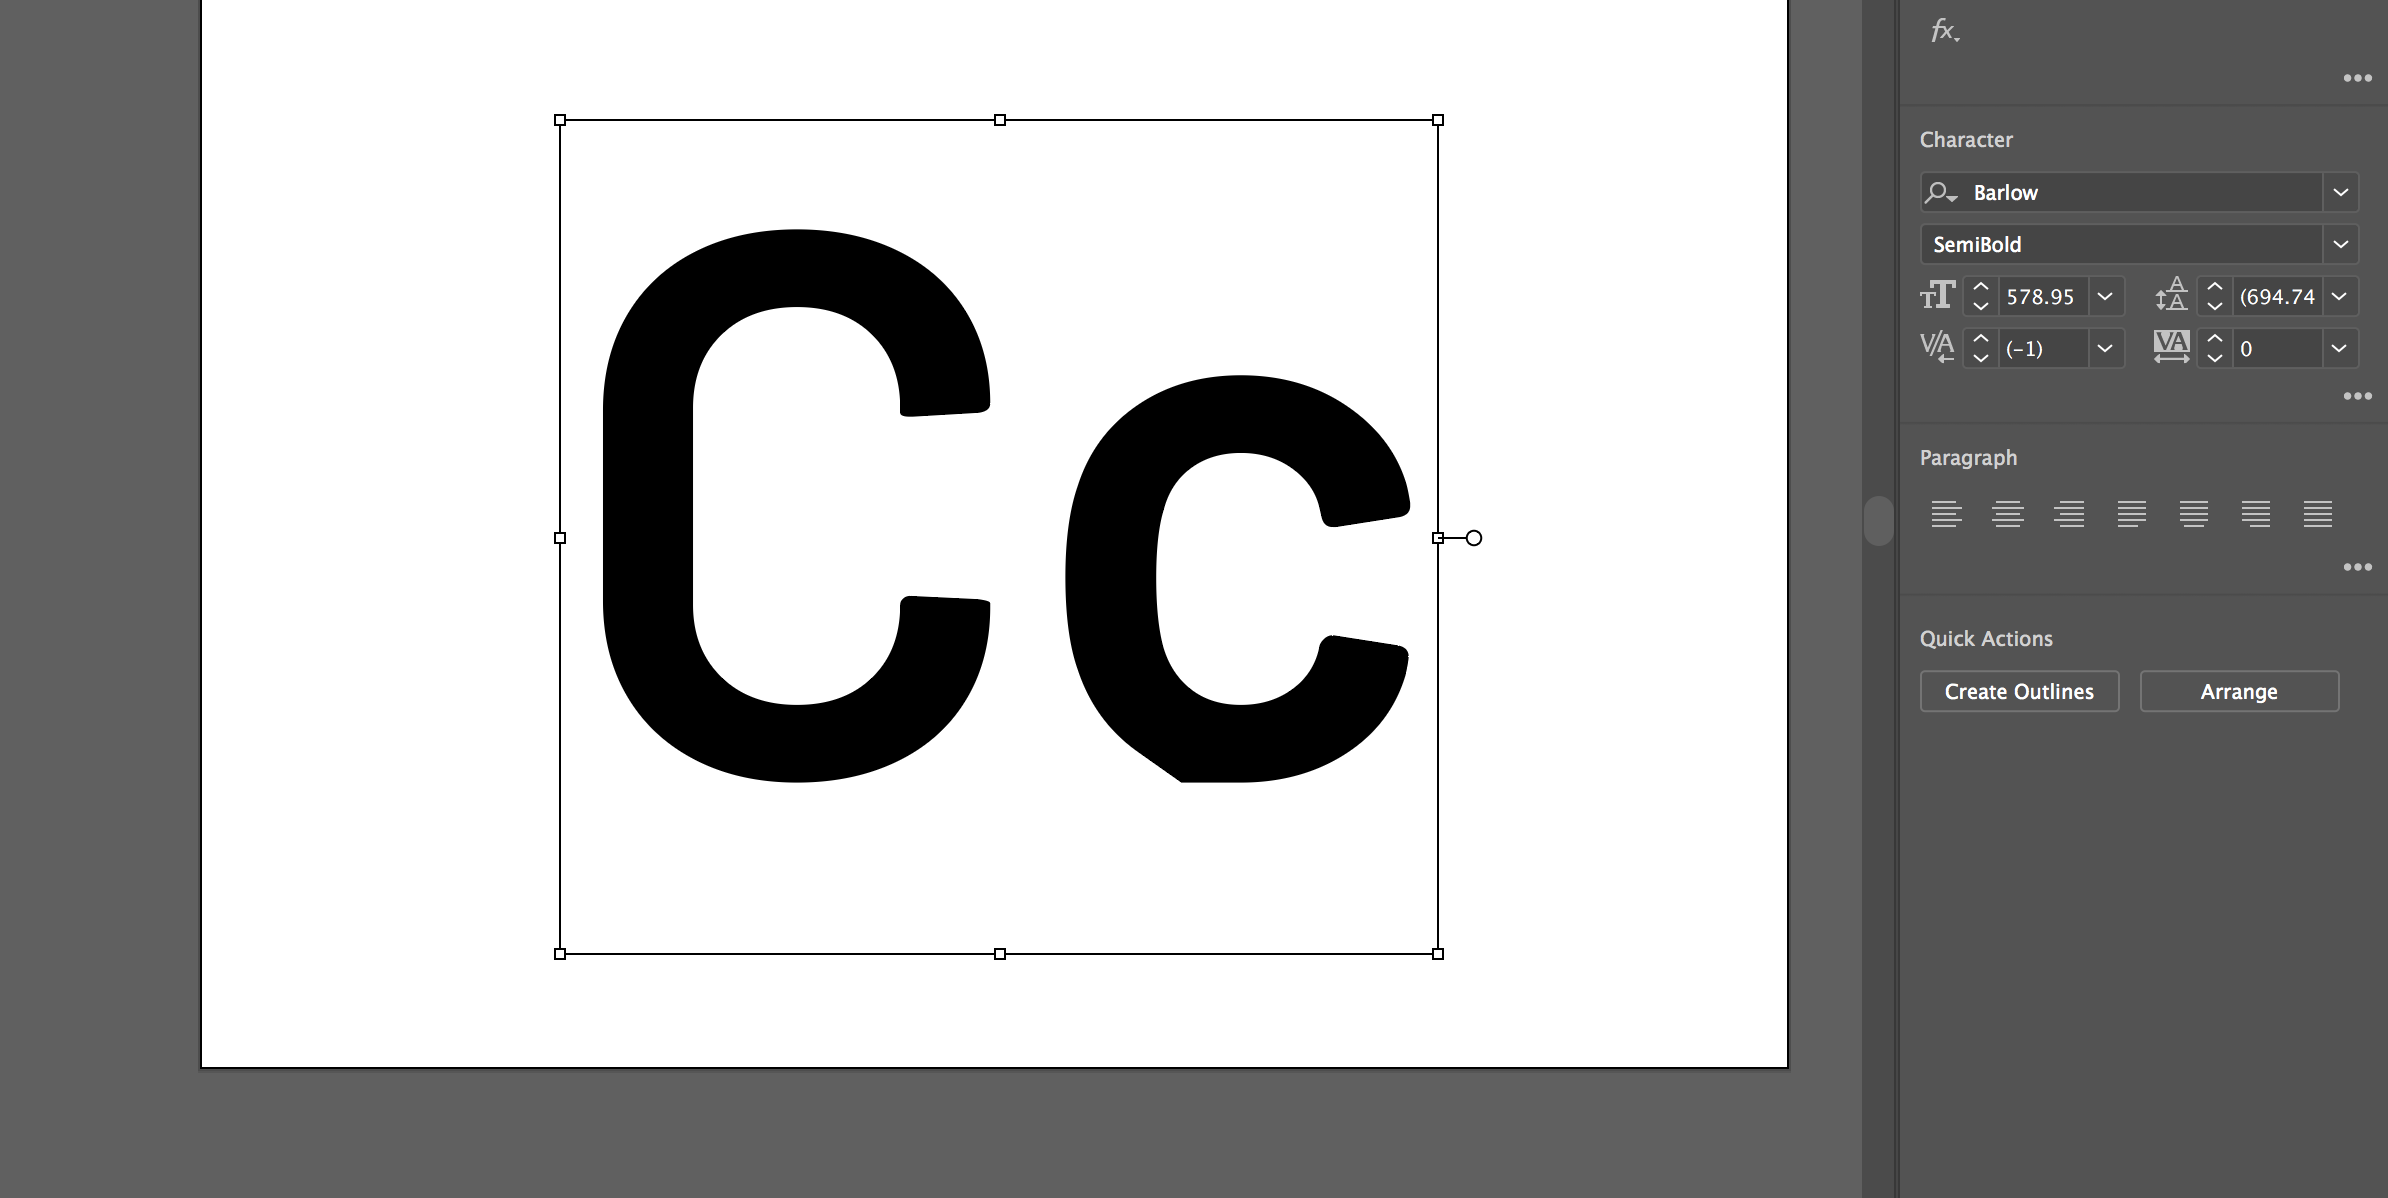 Barlow lower case 'c' issue · Issue #33 · jpt/barlow · GitHub